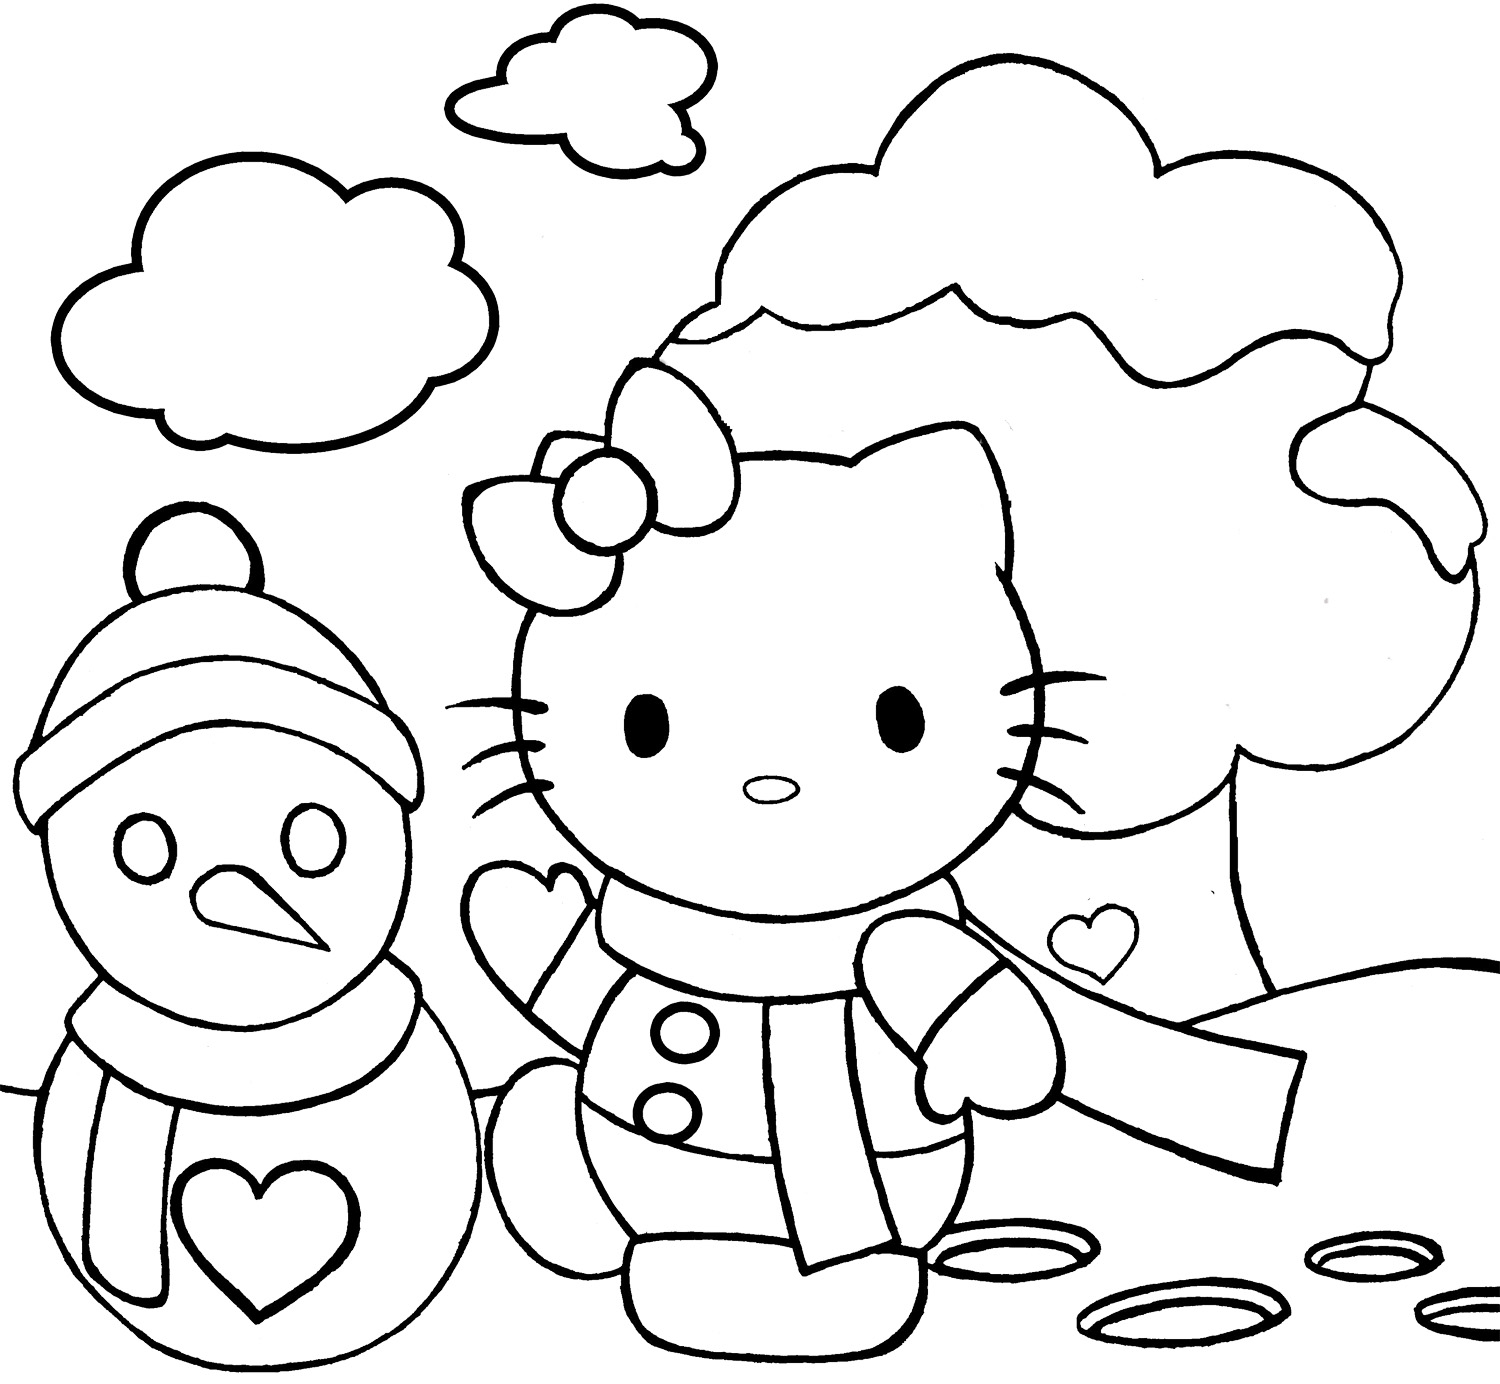 hello kitty holiday coloring pages hello kitty christmas coloring pages getcoloringpagescom holiday hello pages coloring kitty